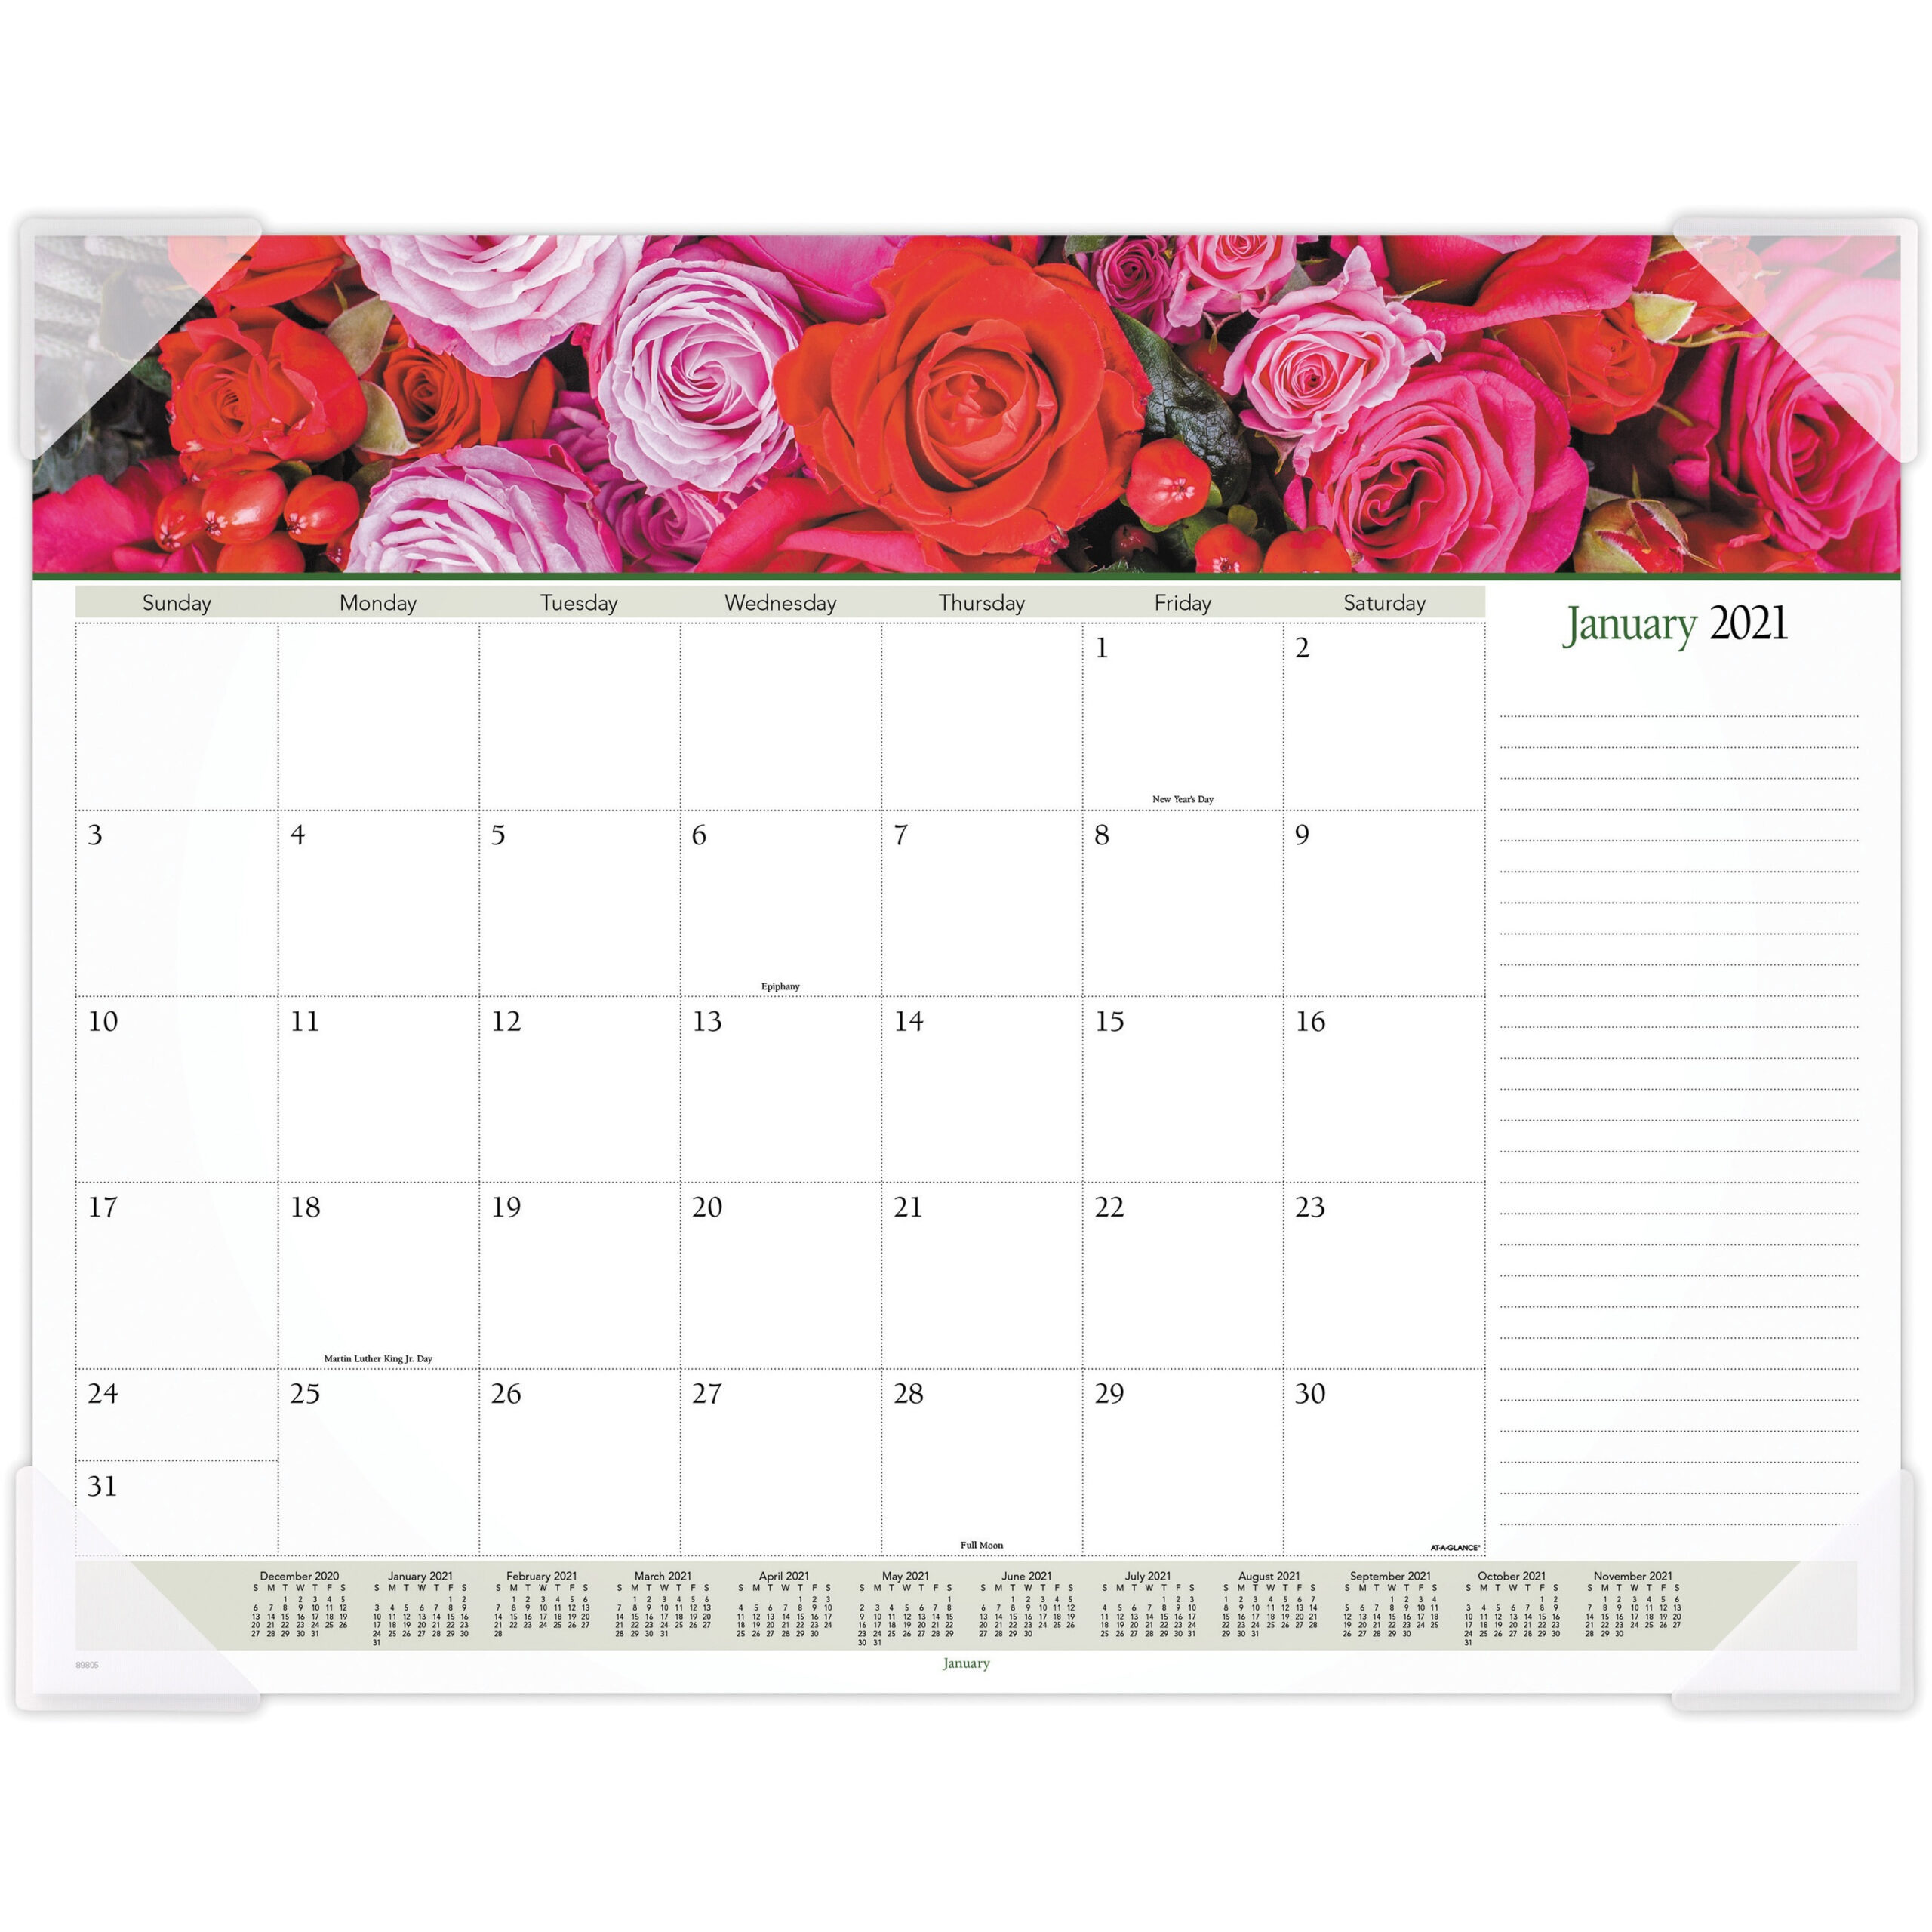 At-A-Glance Panoramic Floral Image Monthly Desk Pad - Julian Dates -  Monthly - 1 Year - January 2021 Till December 2021 - 1 Month Single Page  Layout - regarding Tropical Floral: Calendar 2021 Monthly